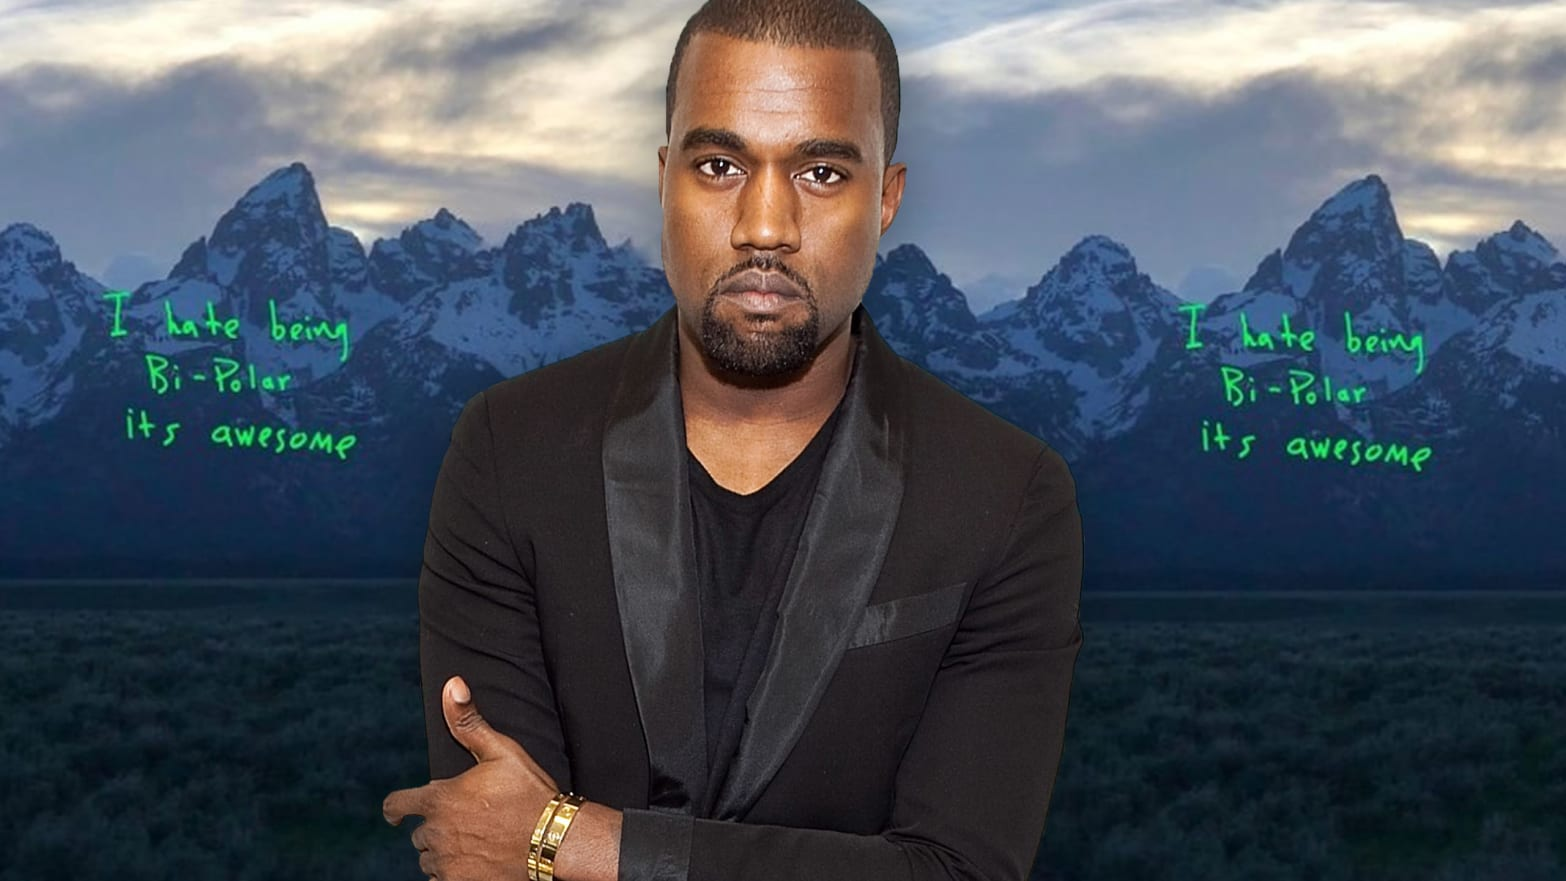 Kanye West's New Album 'Ye' Is a Colossal Letdown